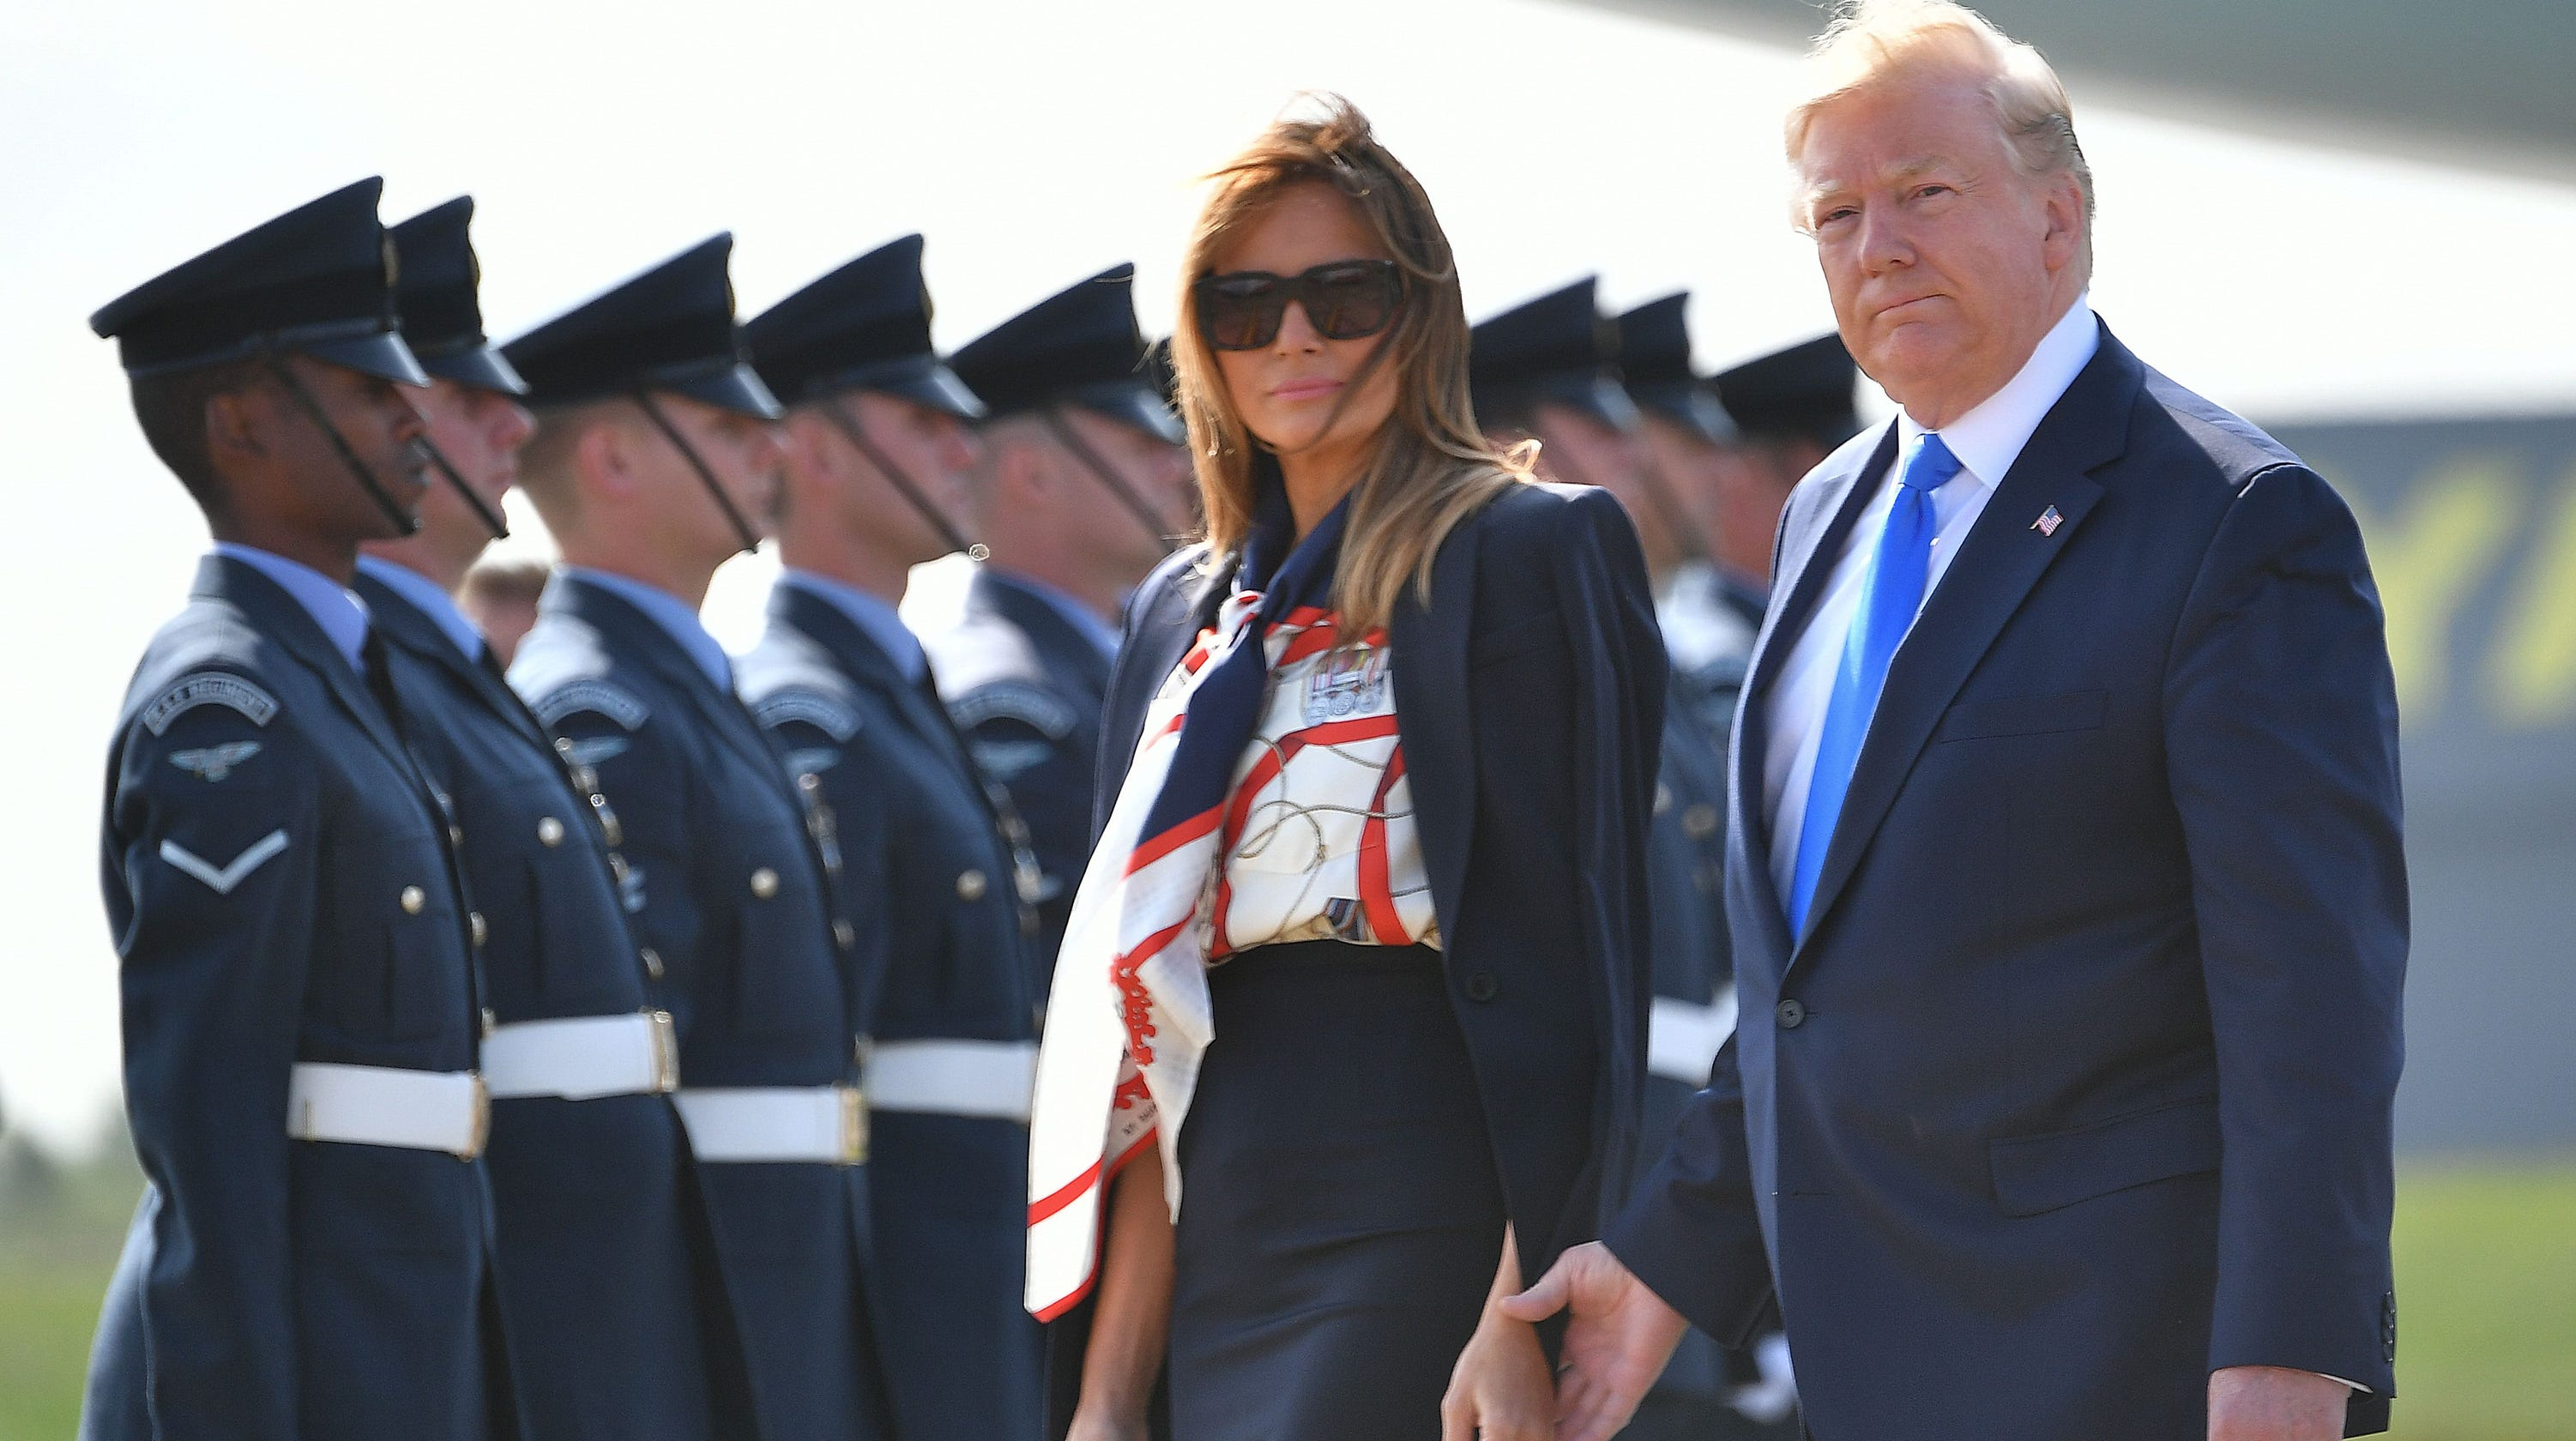 0ff76a2c6c Trump's U.K. visit: What you need to know, from royal ceremony to protests  in London